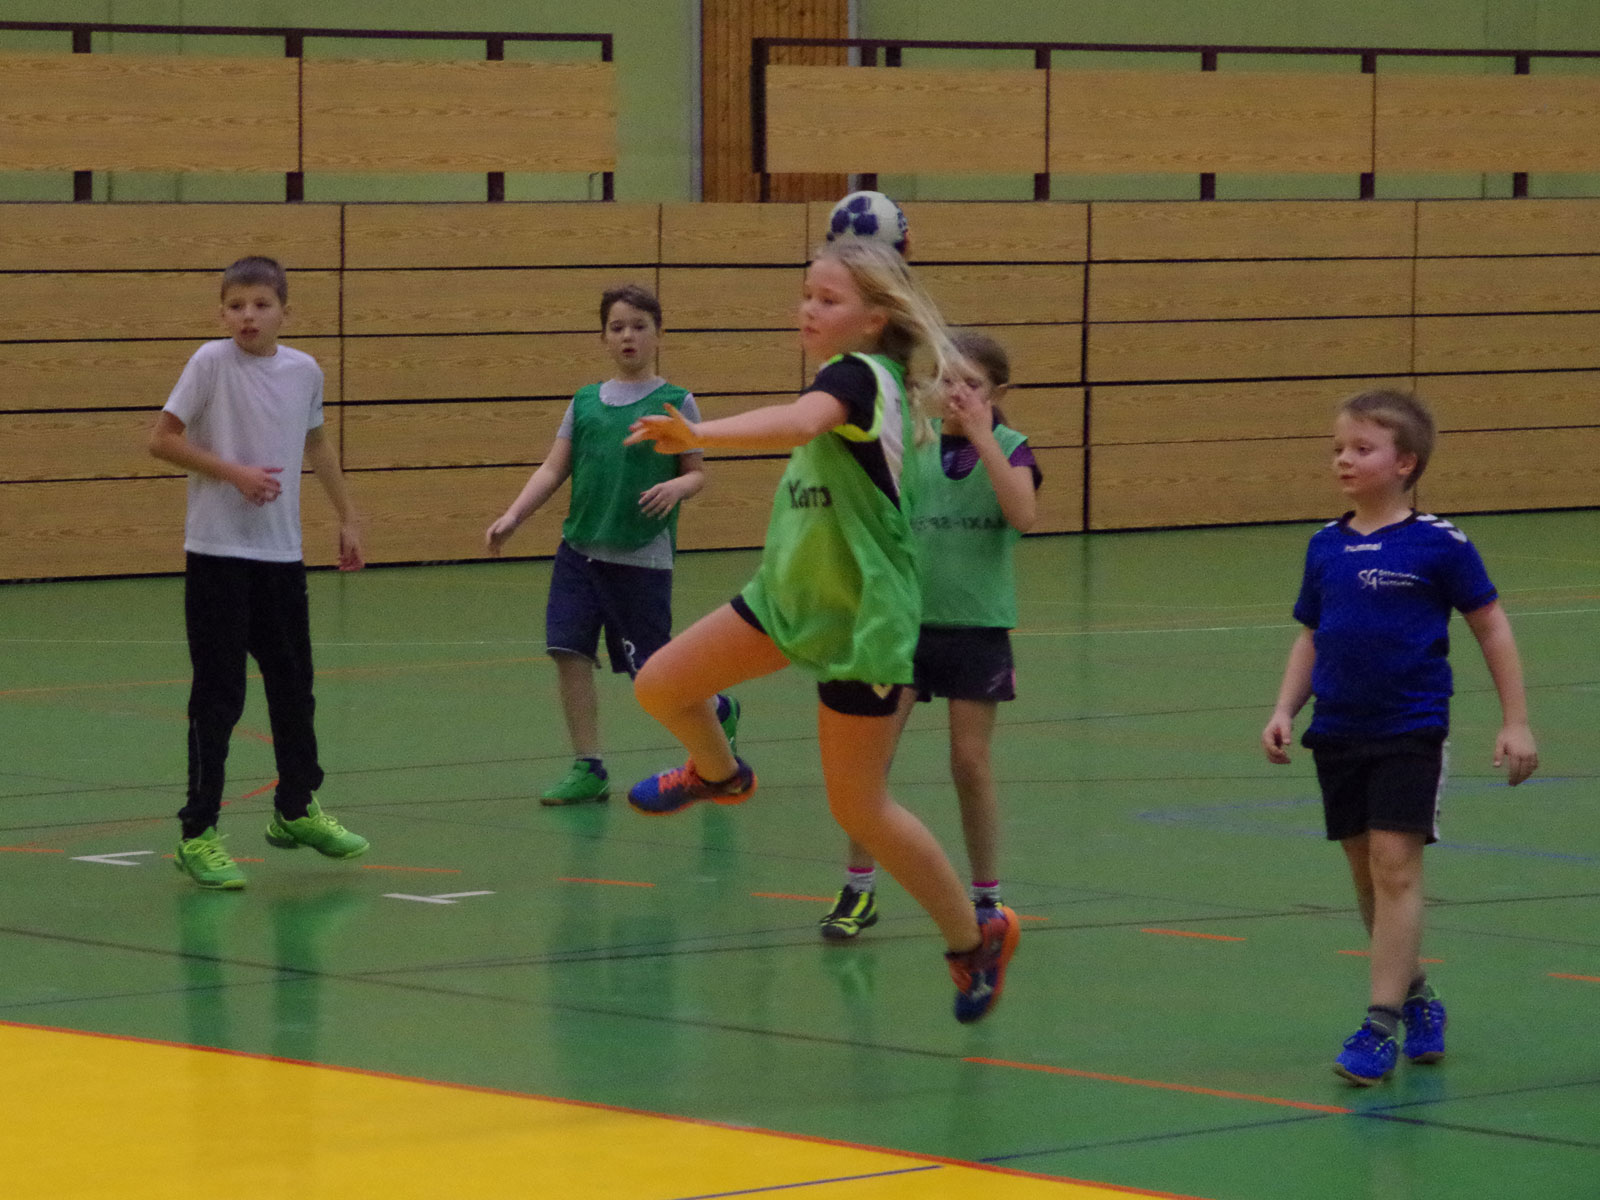 Handball-Camps 2018/2019 | TS Ottersweier